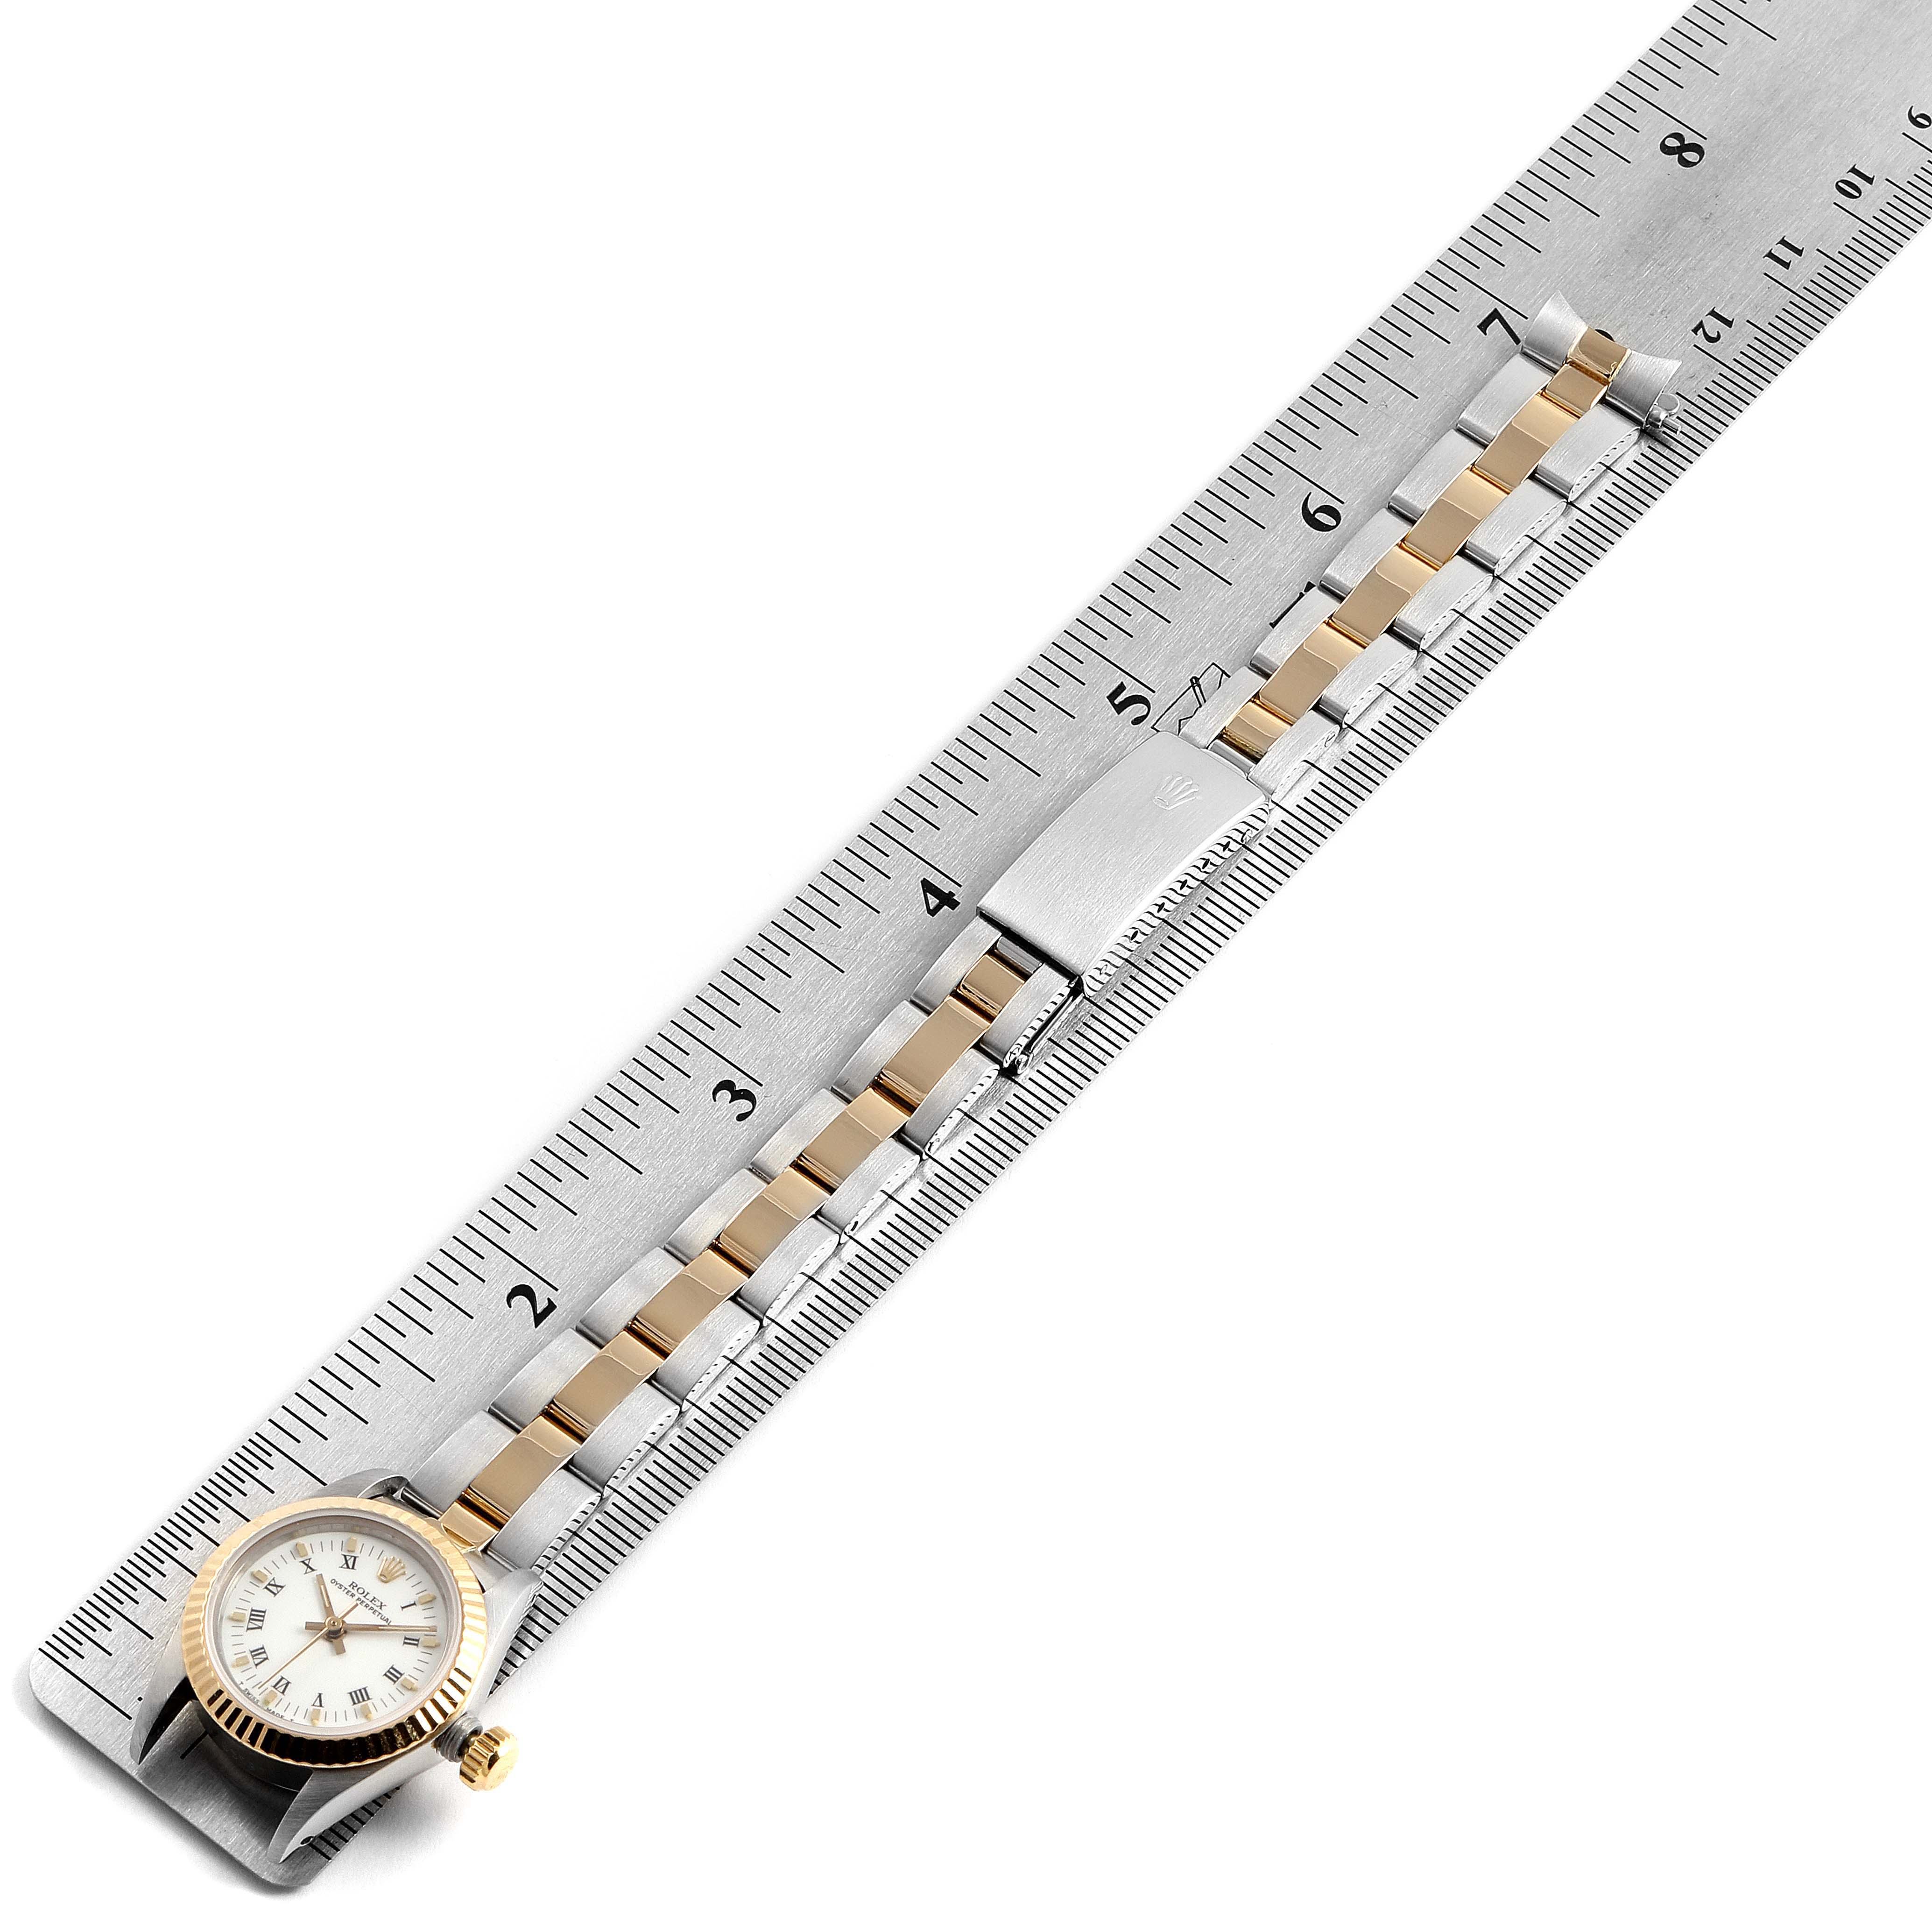 Rolex Oyster Perpetual Steel Yellow Gold White Dial Ladies Watch 67193 SwissWatchExpo